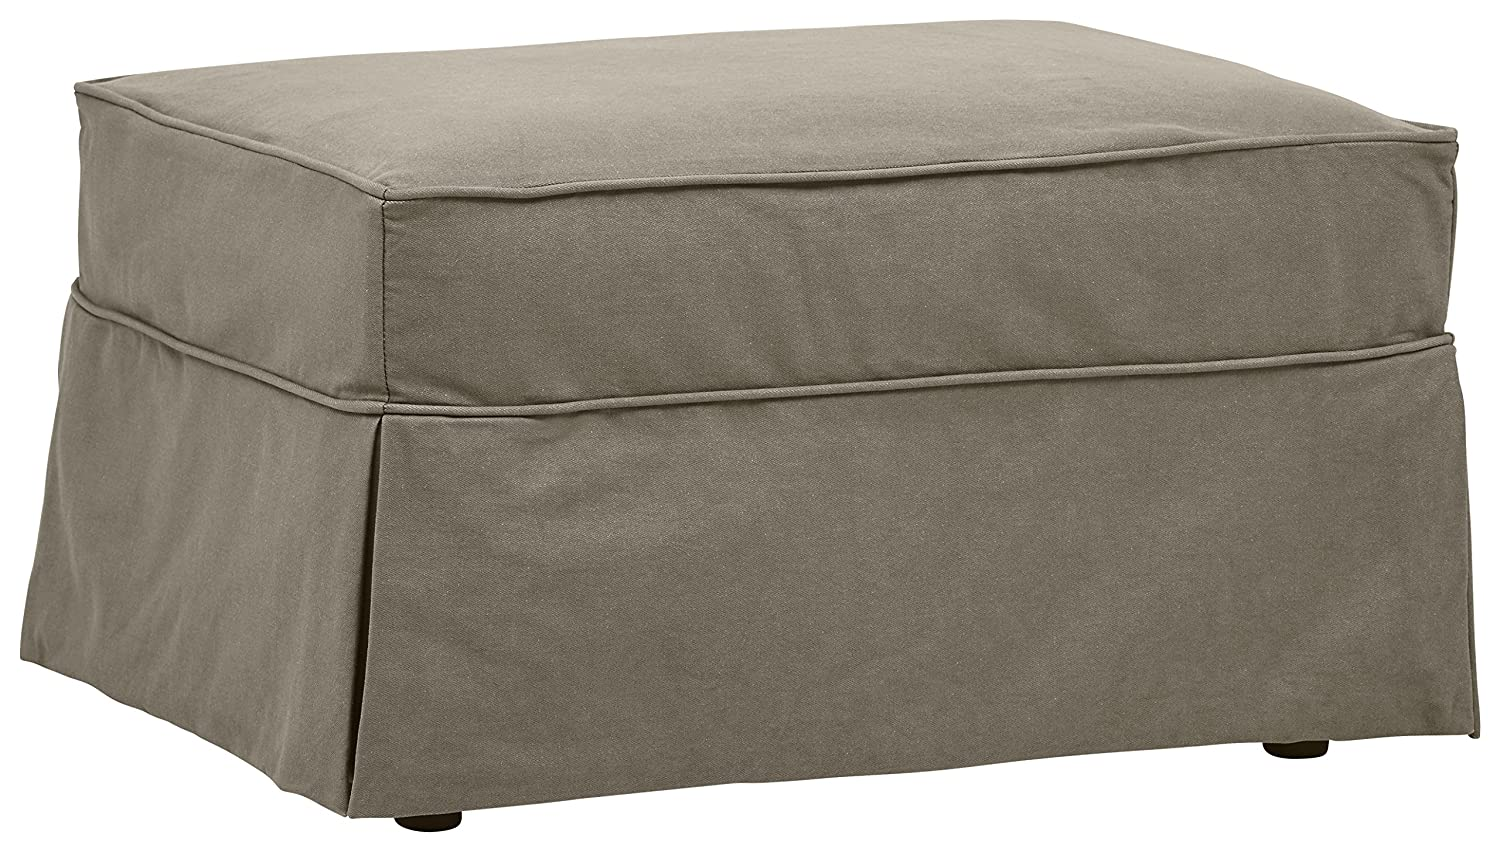 "Stone & Beam Carrigan Slipcovered Ottoman, 33""W, Grey Taupe"